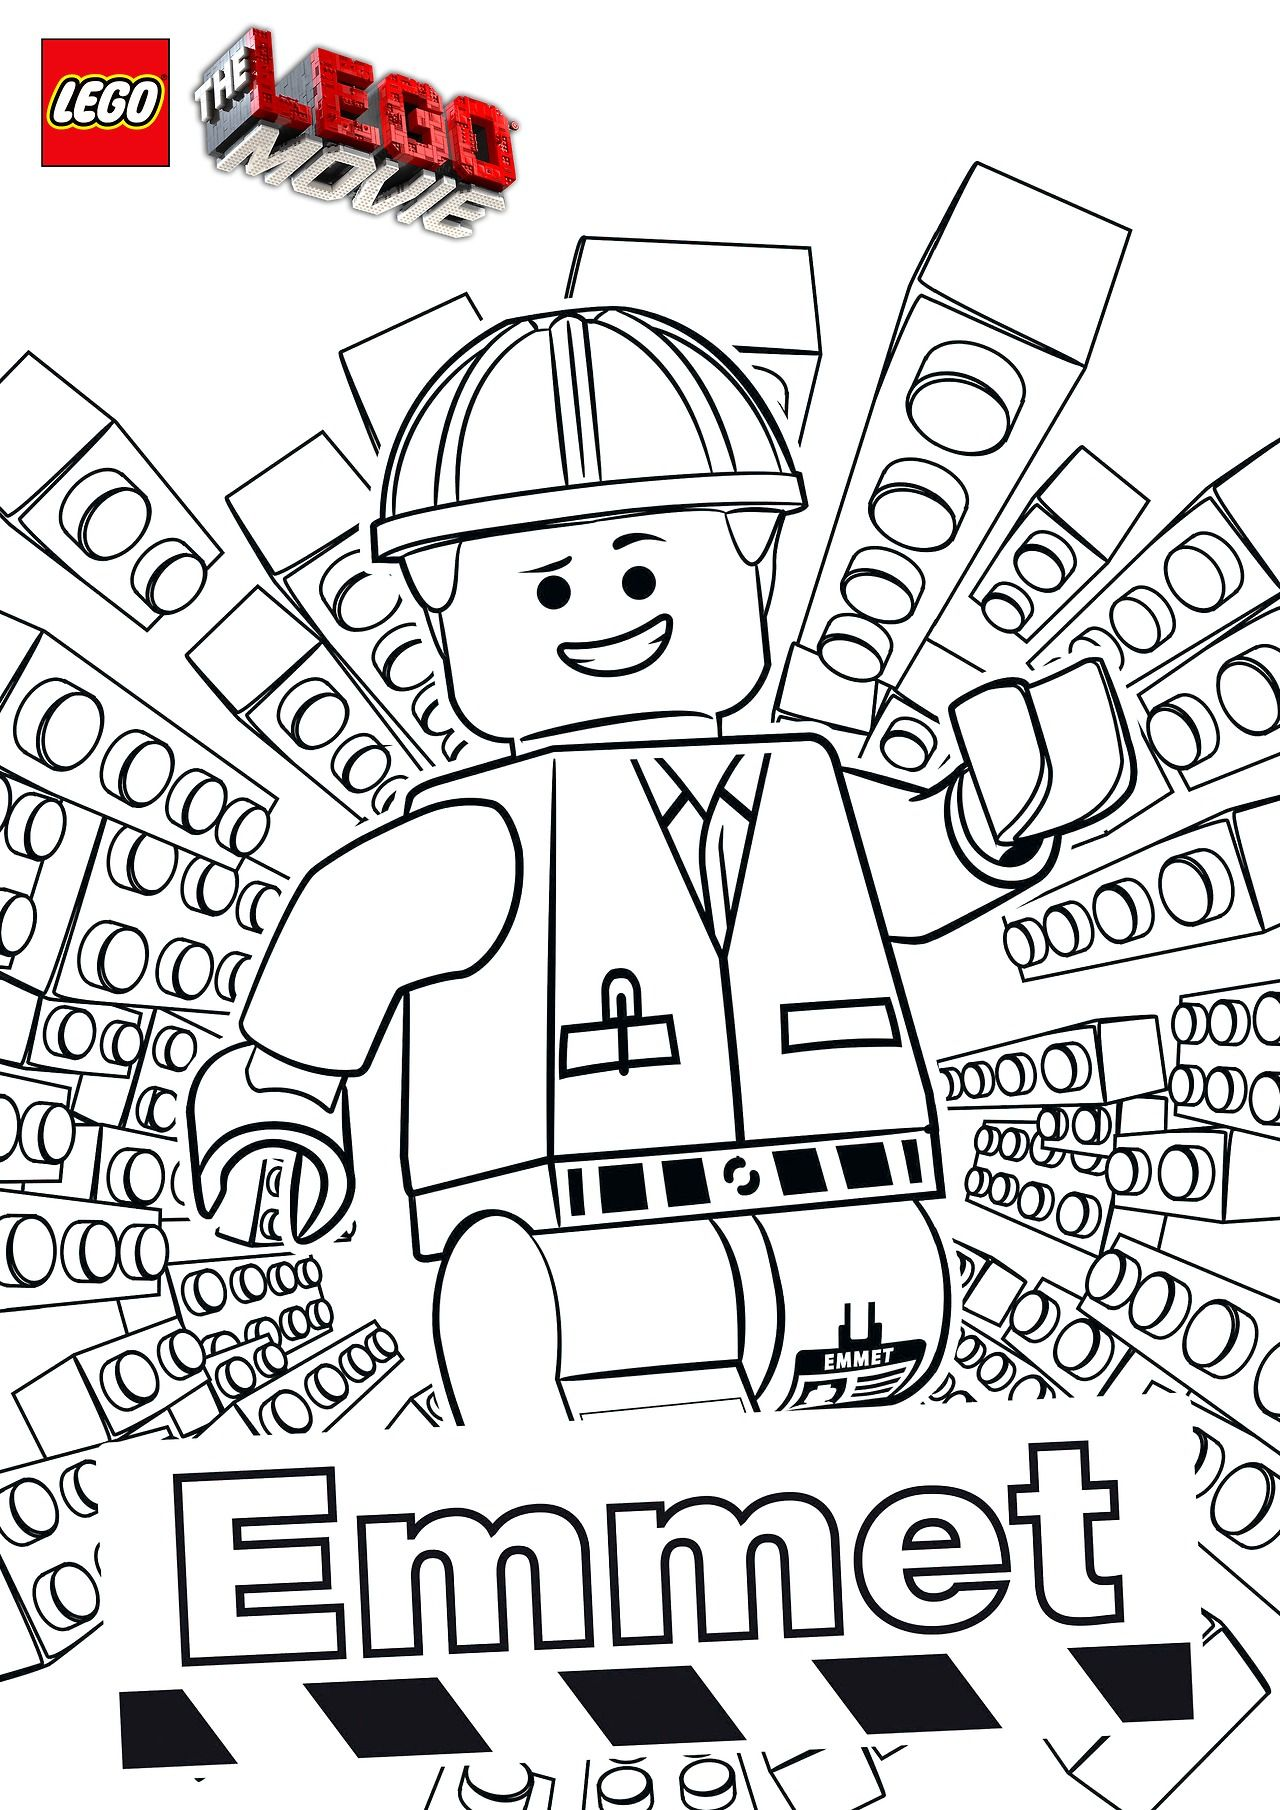 The Lego Movie Coloring Pages Lego Minifigures Lego Coloring Pages Lego Movie Coloring Pages Lego Coloring